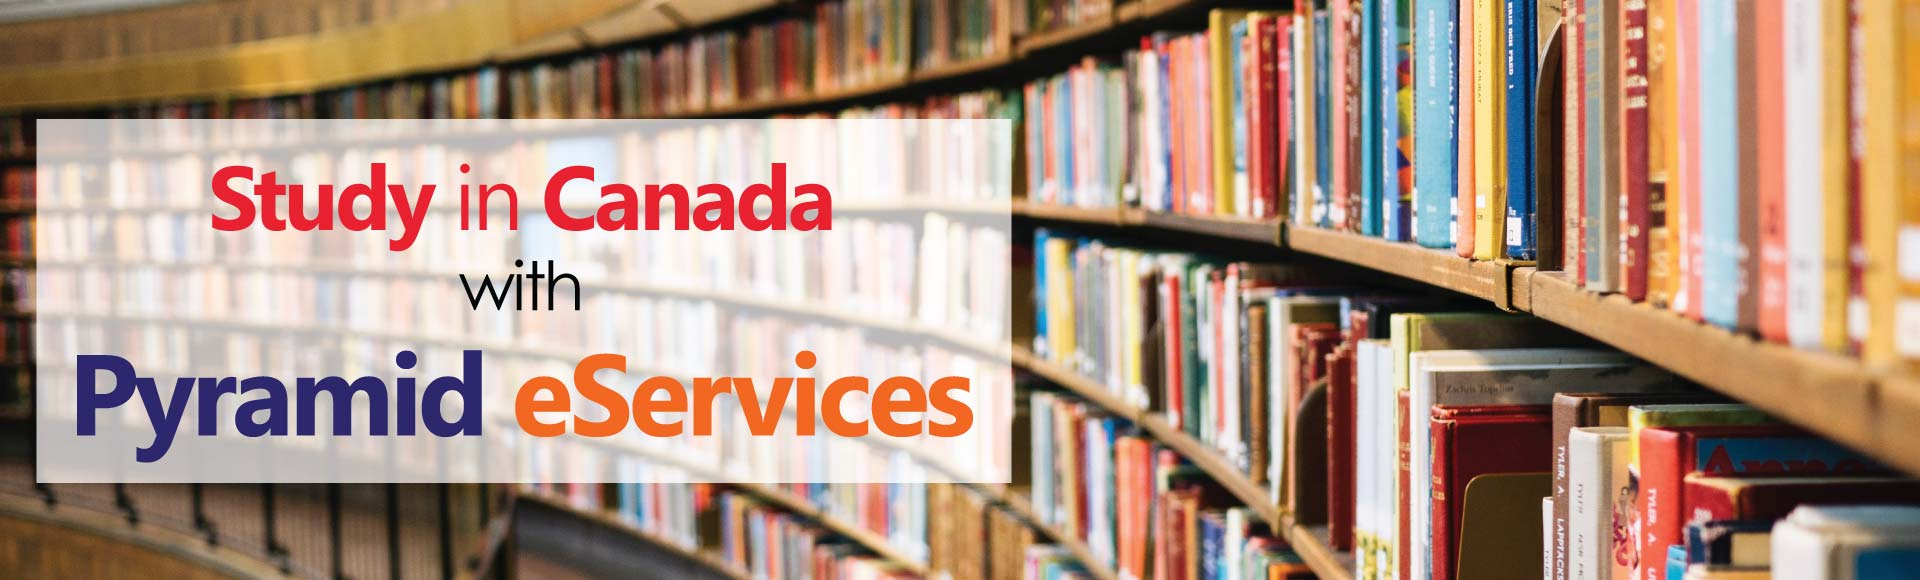 Study in Canada with the help or Pyramid eServices